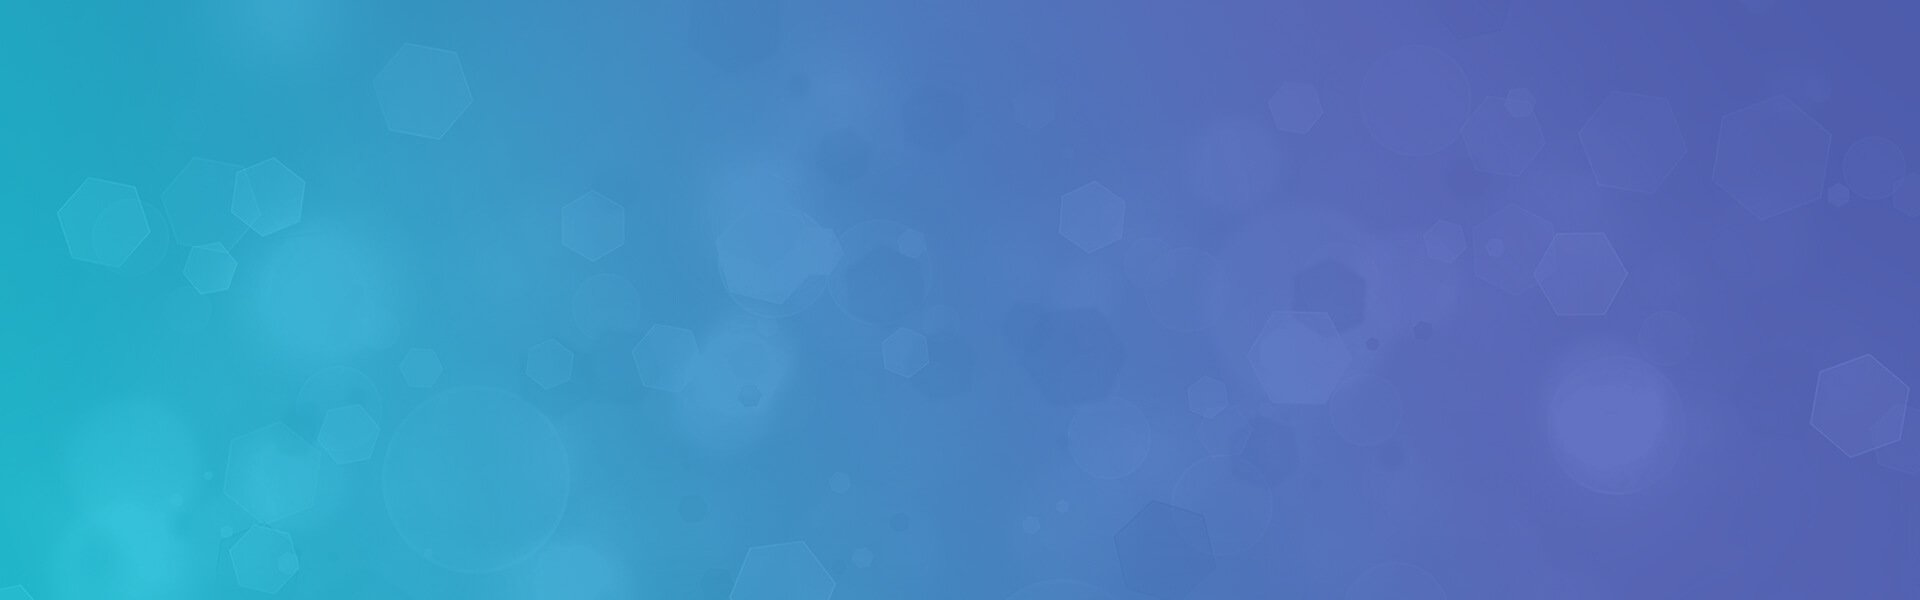 blue background slider